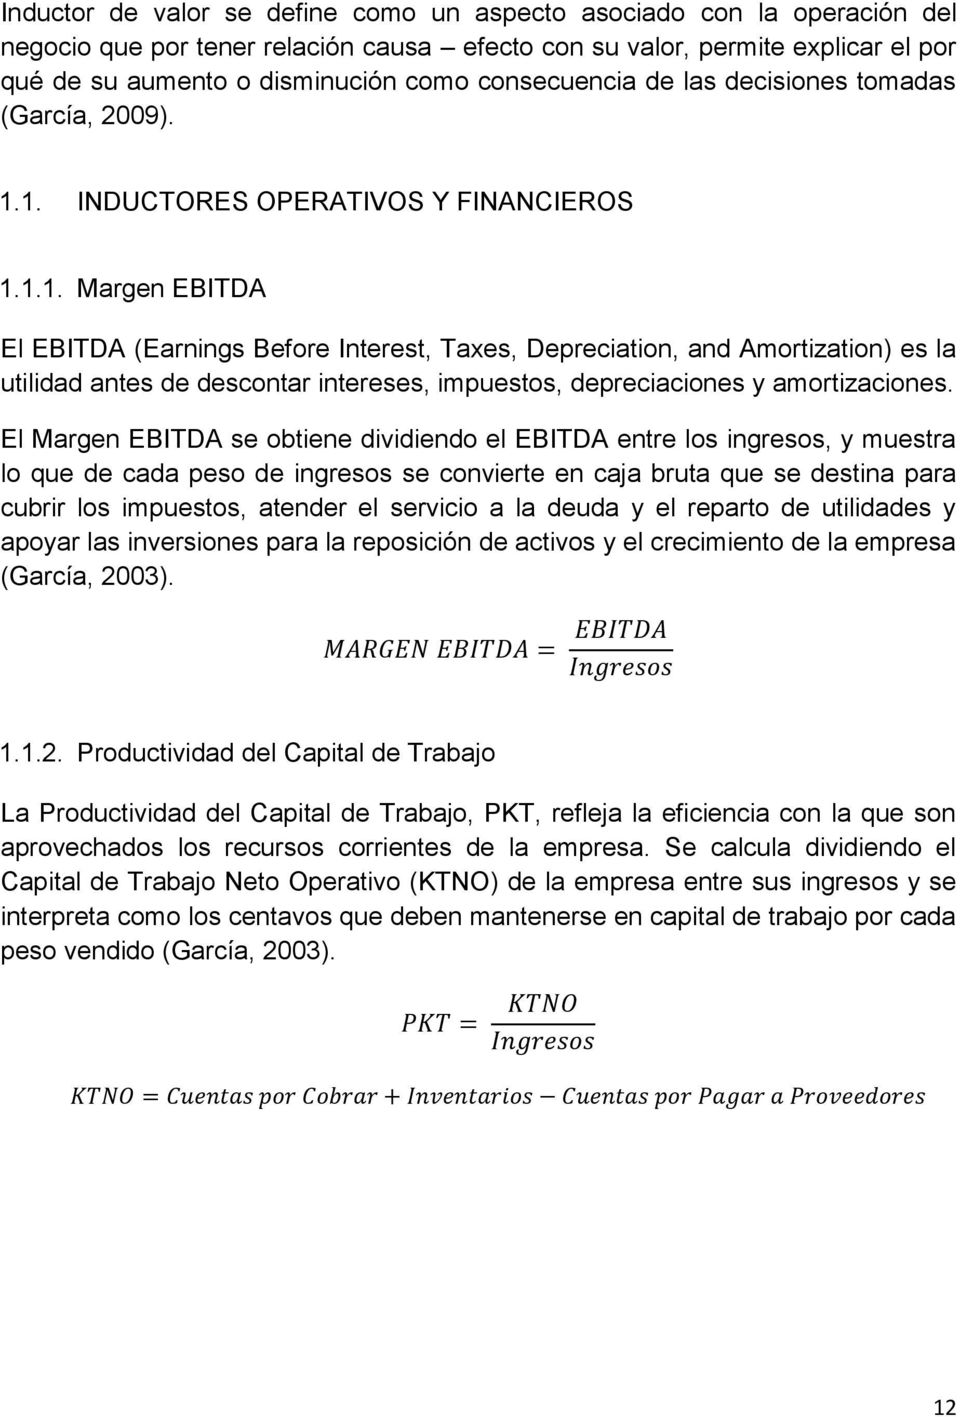 1. INDUCTORES OPERATIVOS Y FINANCIEROS 1.1.1. Margen EBITDA El EBITDA (Earnings Before Interest, Taxes, Depreciation, and Amortization) es la utilidad antes de descontar intereses, impuestos, depreciaciones y amortizaciones.